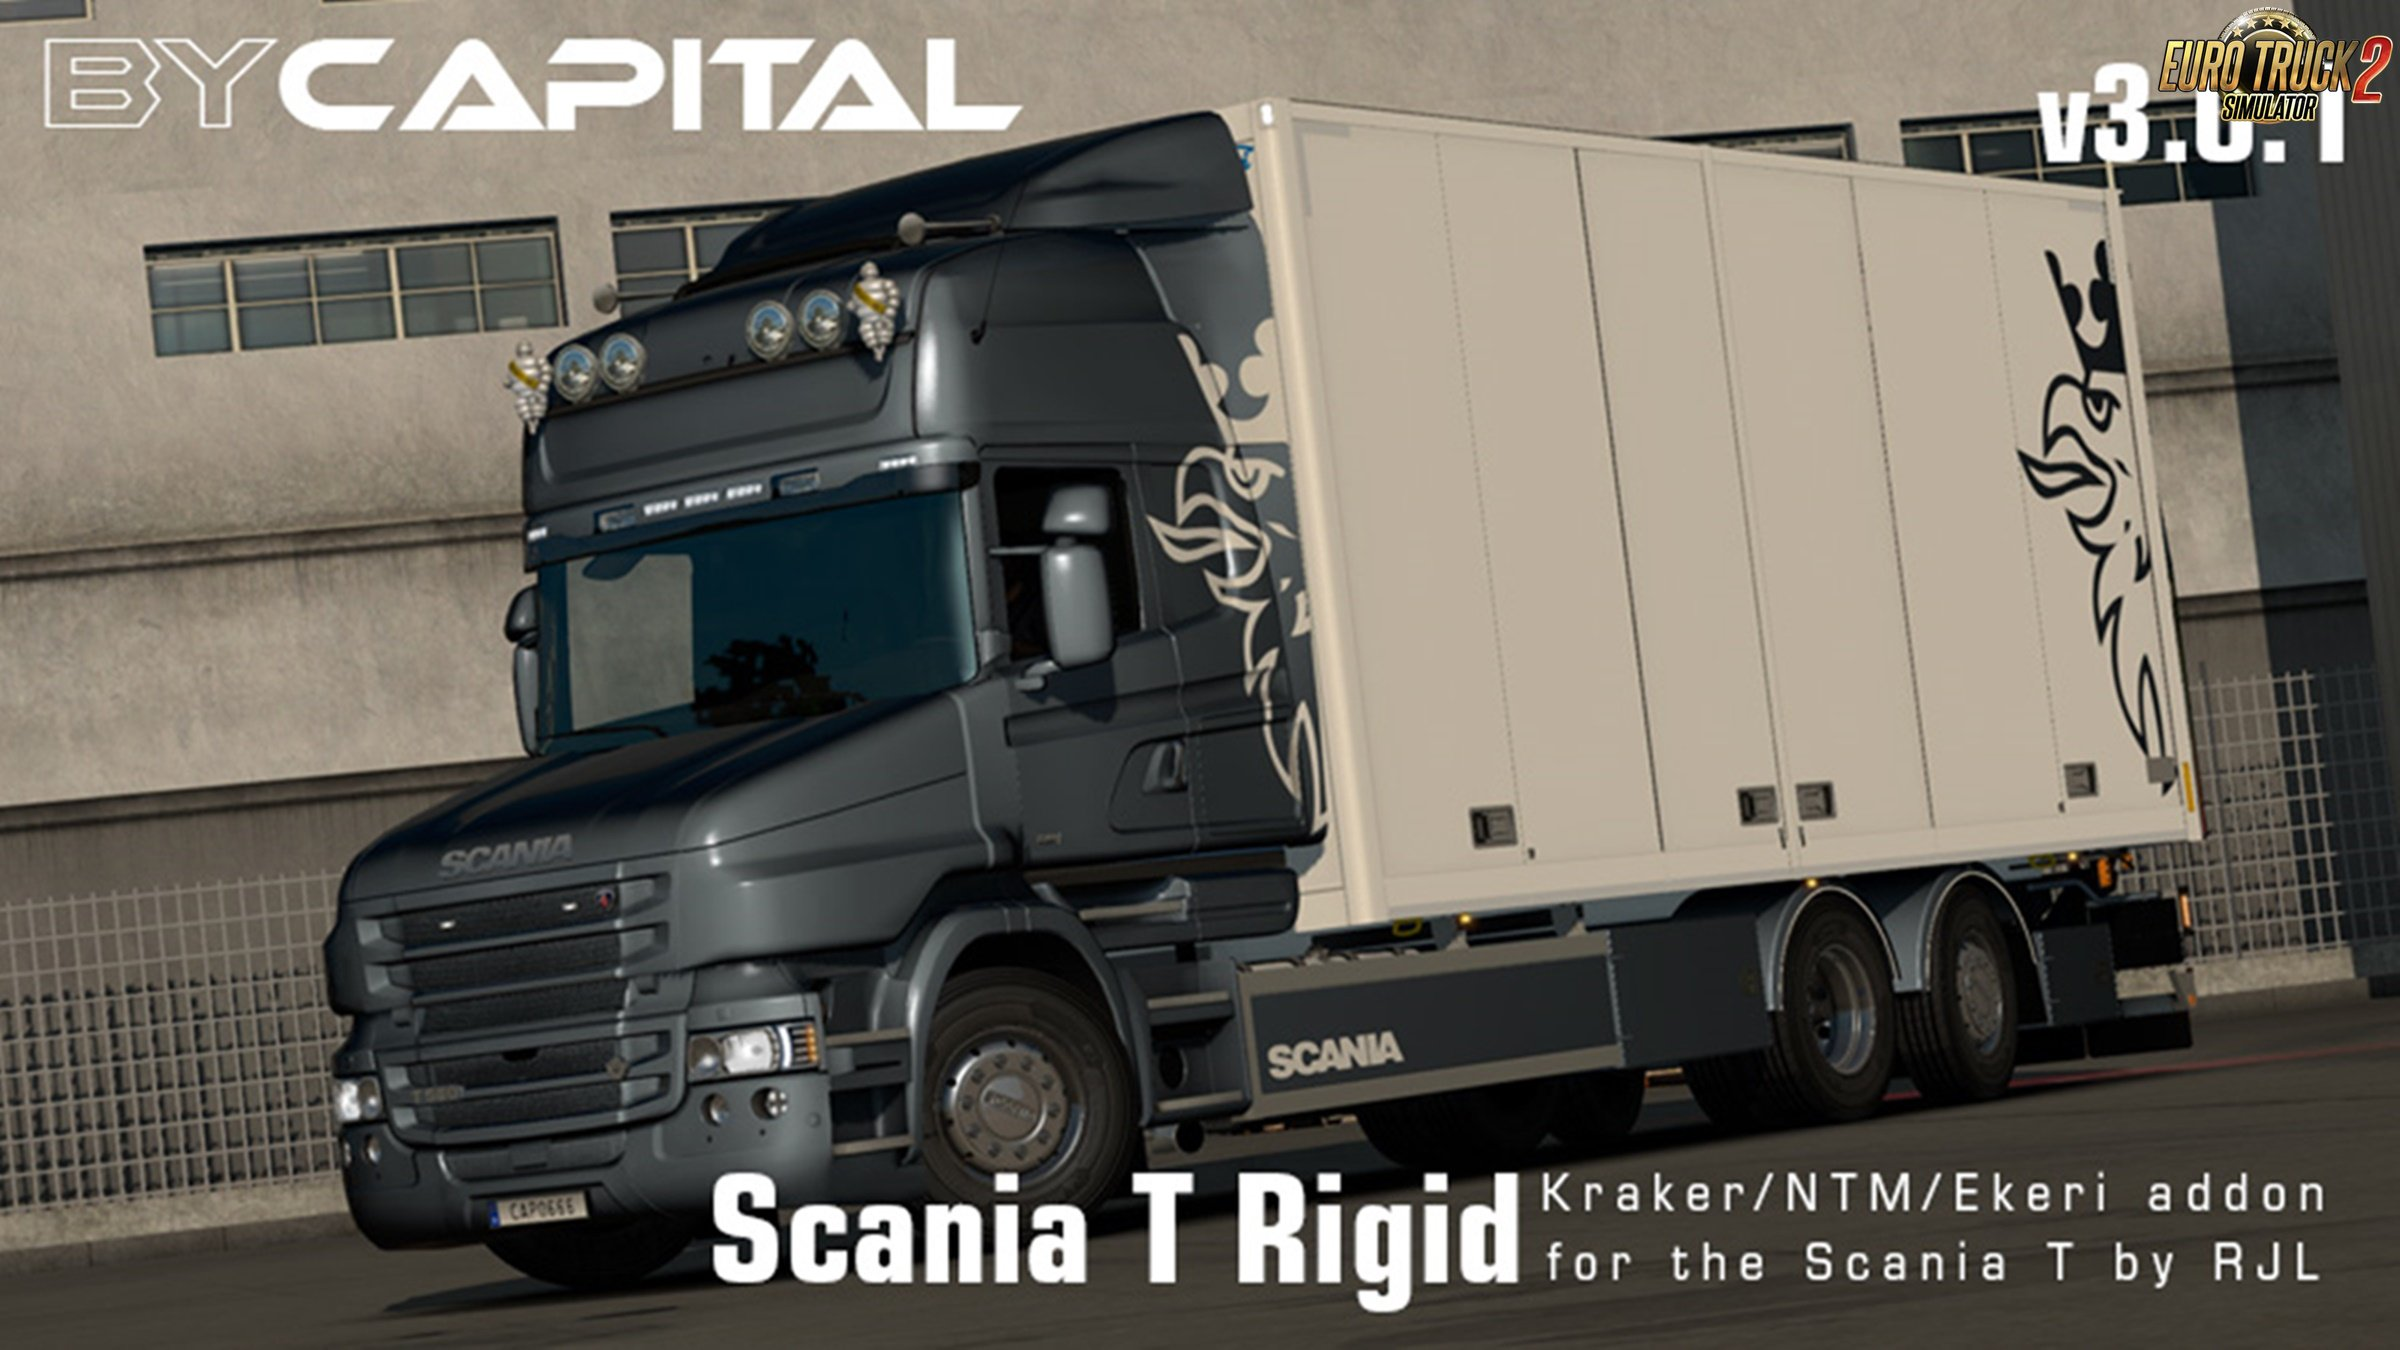 Rigid chassis for RJL Scania T & T4 (Kraker/NTM/Ekeri) v3.0.1 - ByCapital